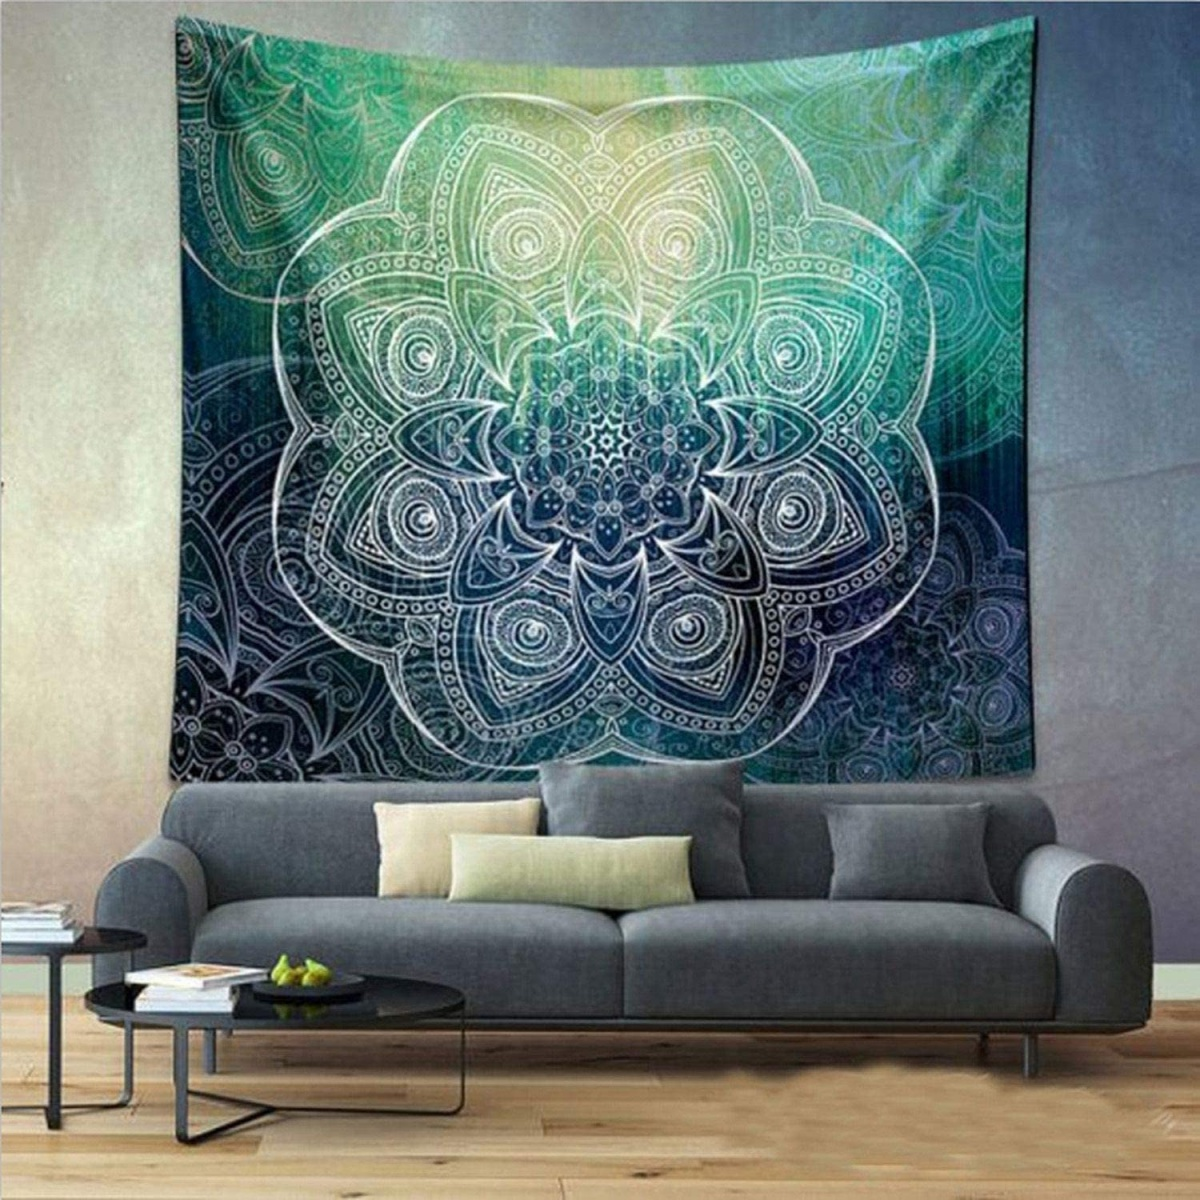 Hang a tapestry or rug